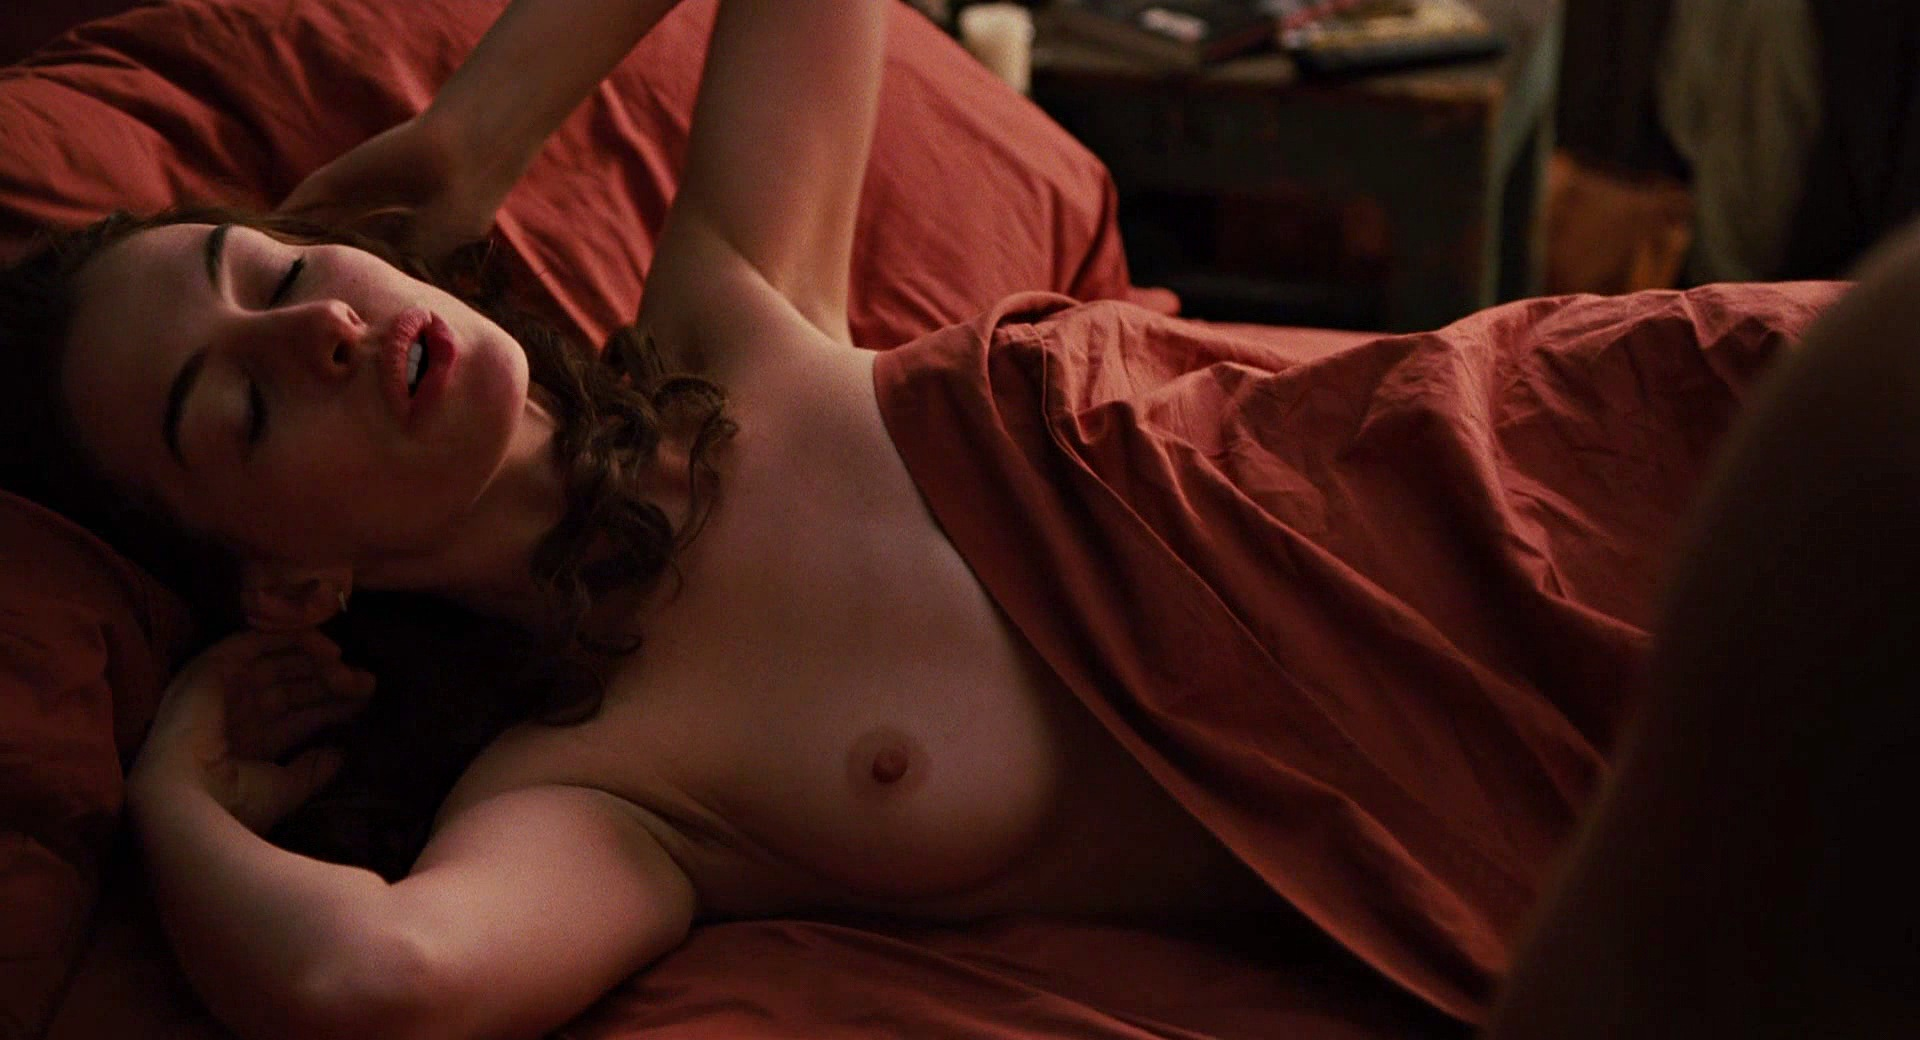 anne hathaway nude is just plain awesome (20 pics)